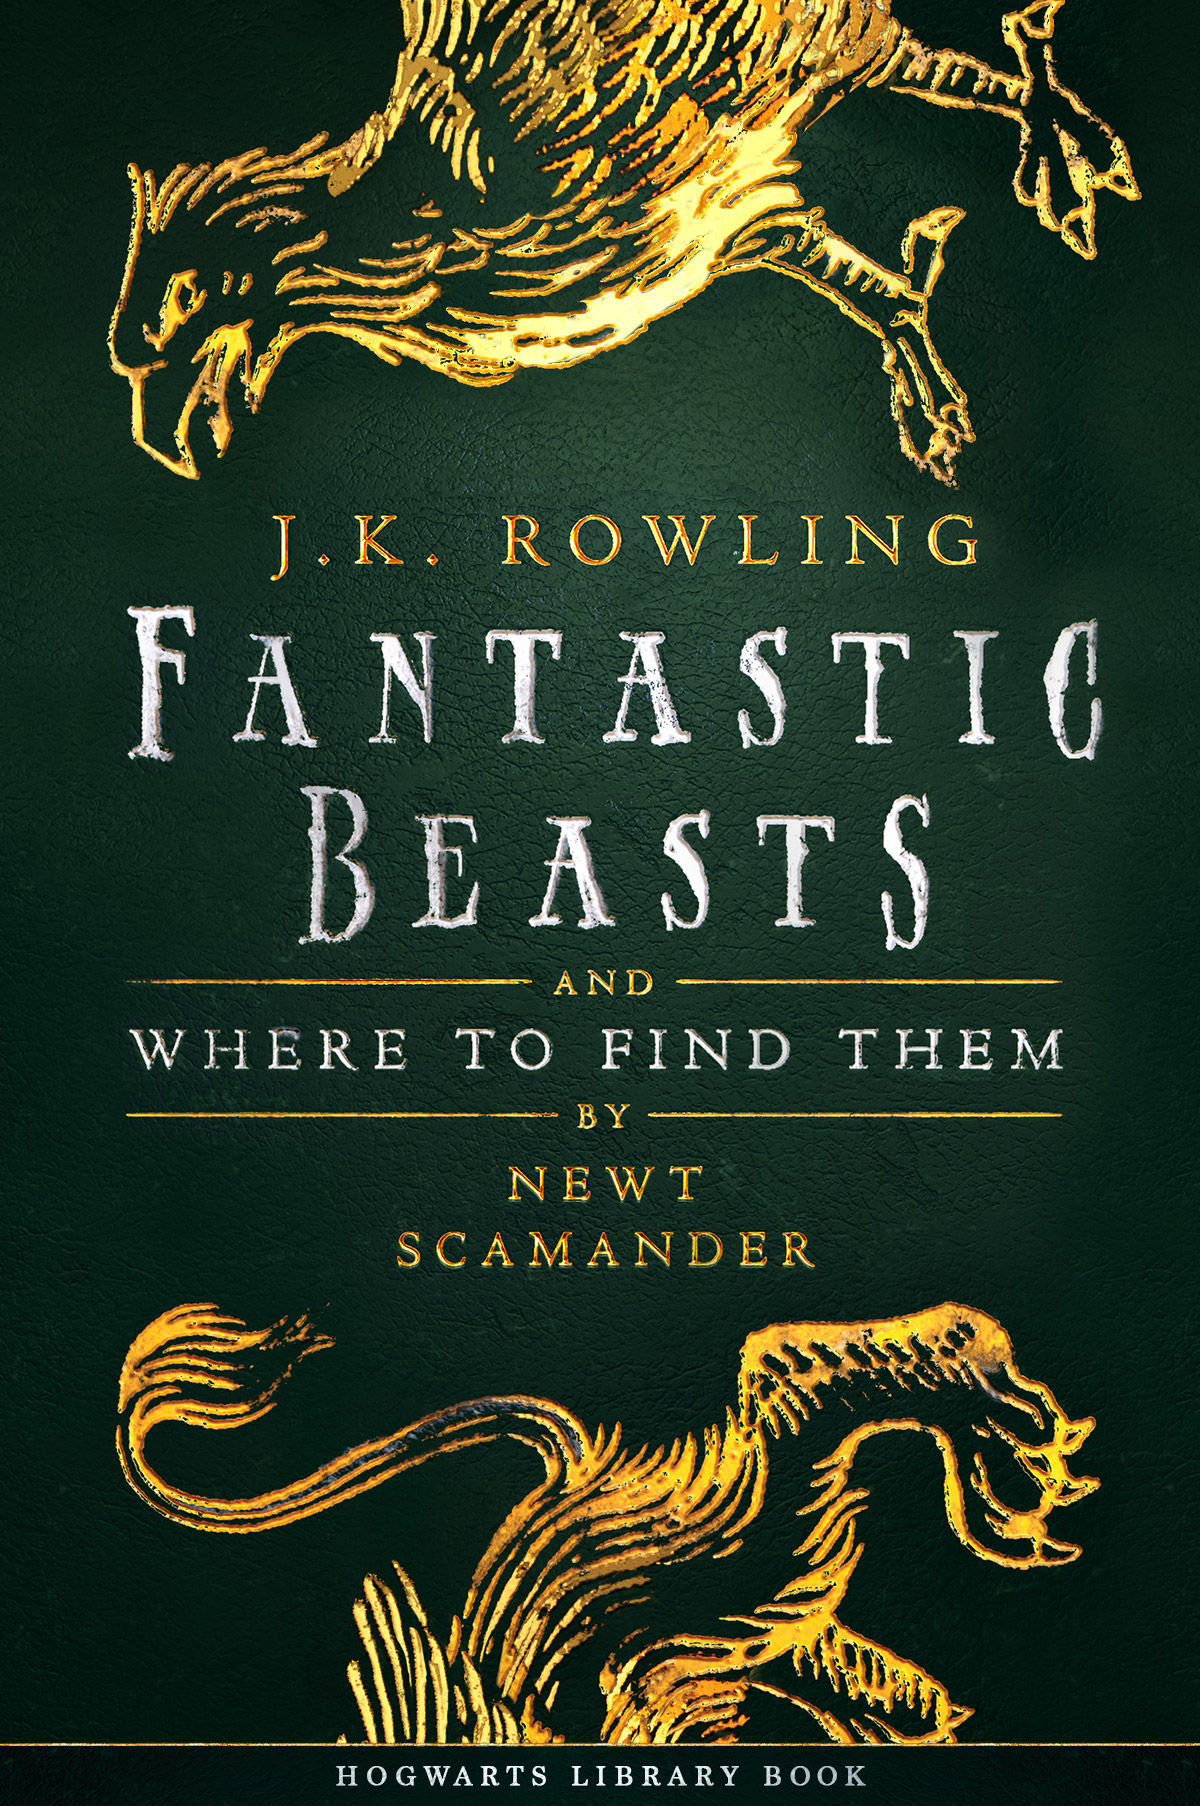 Дж. К. Роулинг Fantastic Beasts and Where to Find Them fantastic beasts and where to find them illustrated edition